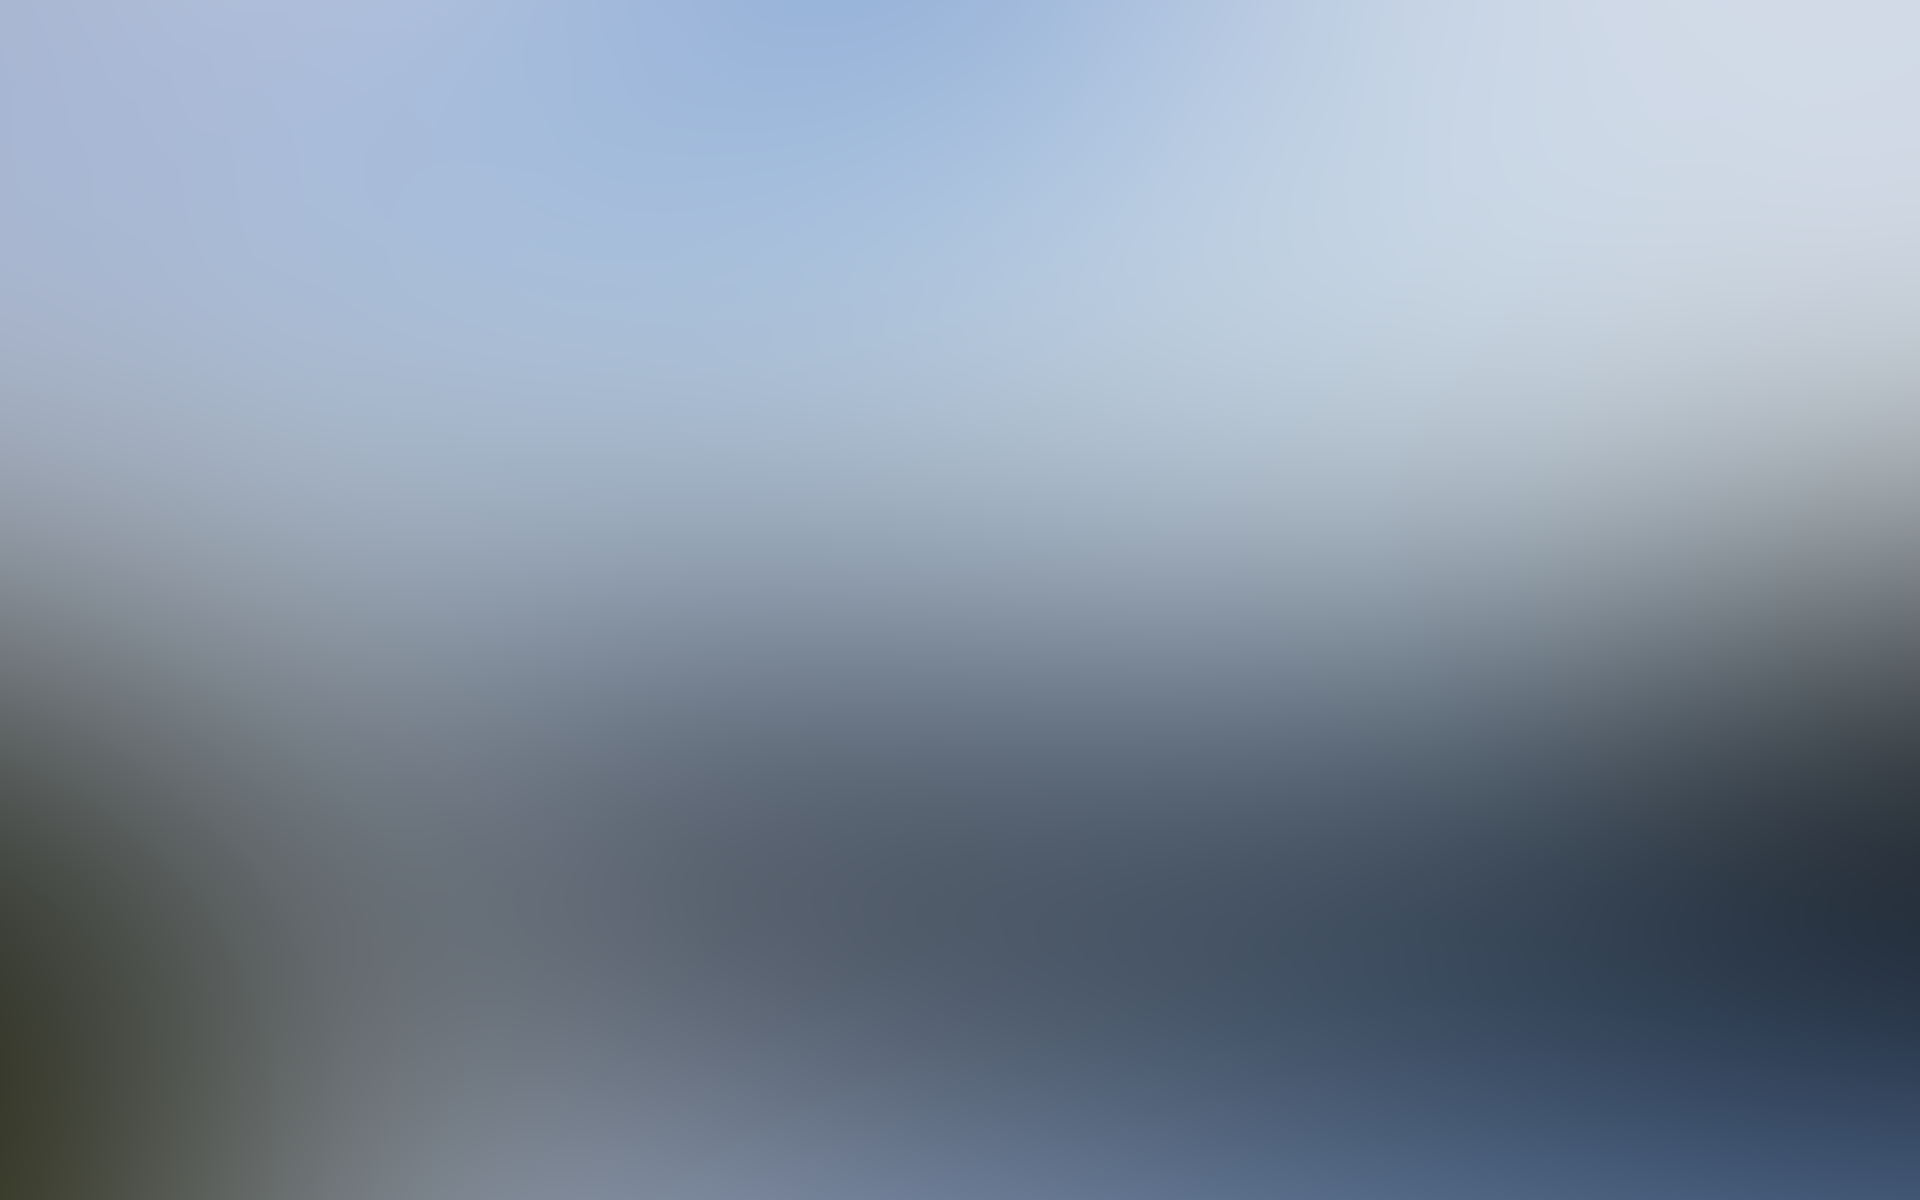 gaussian Blur HD Wallpaper